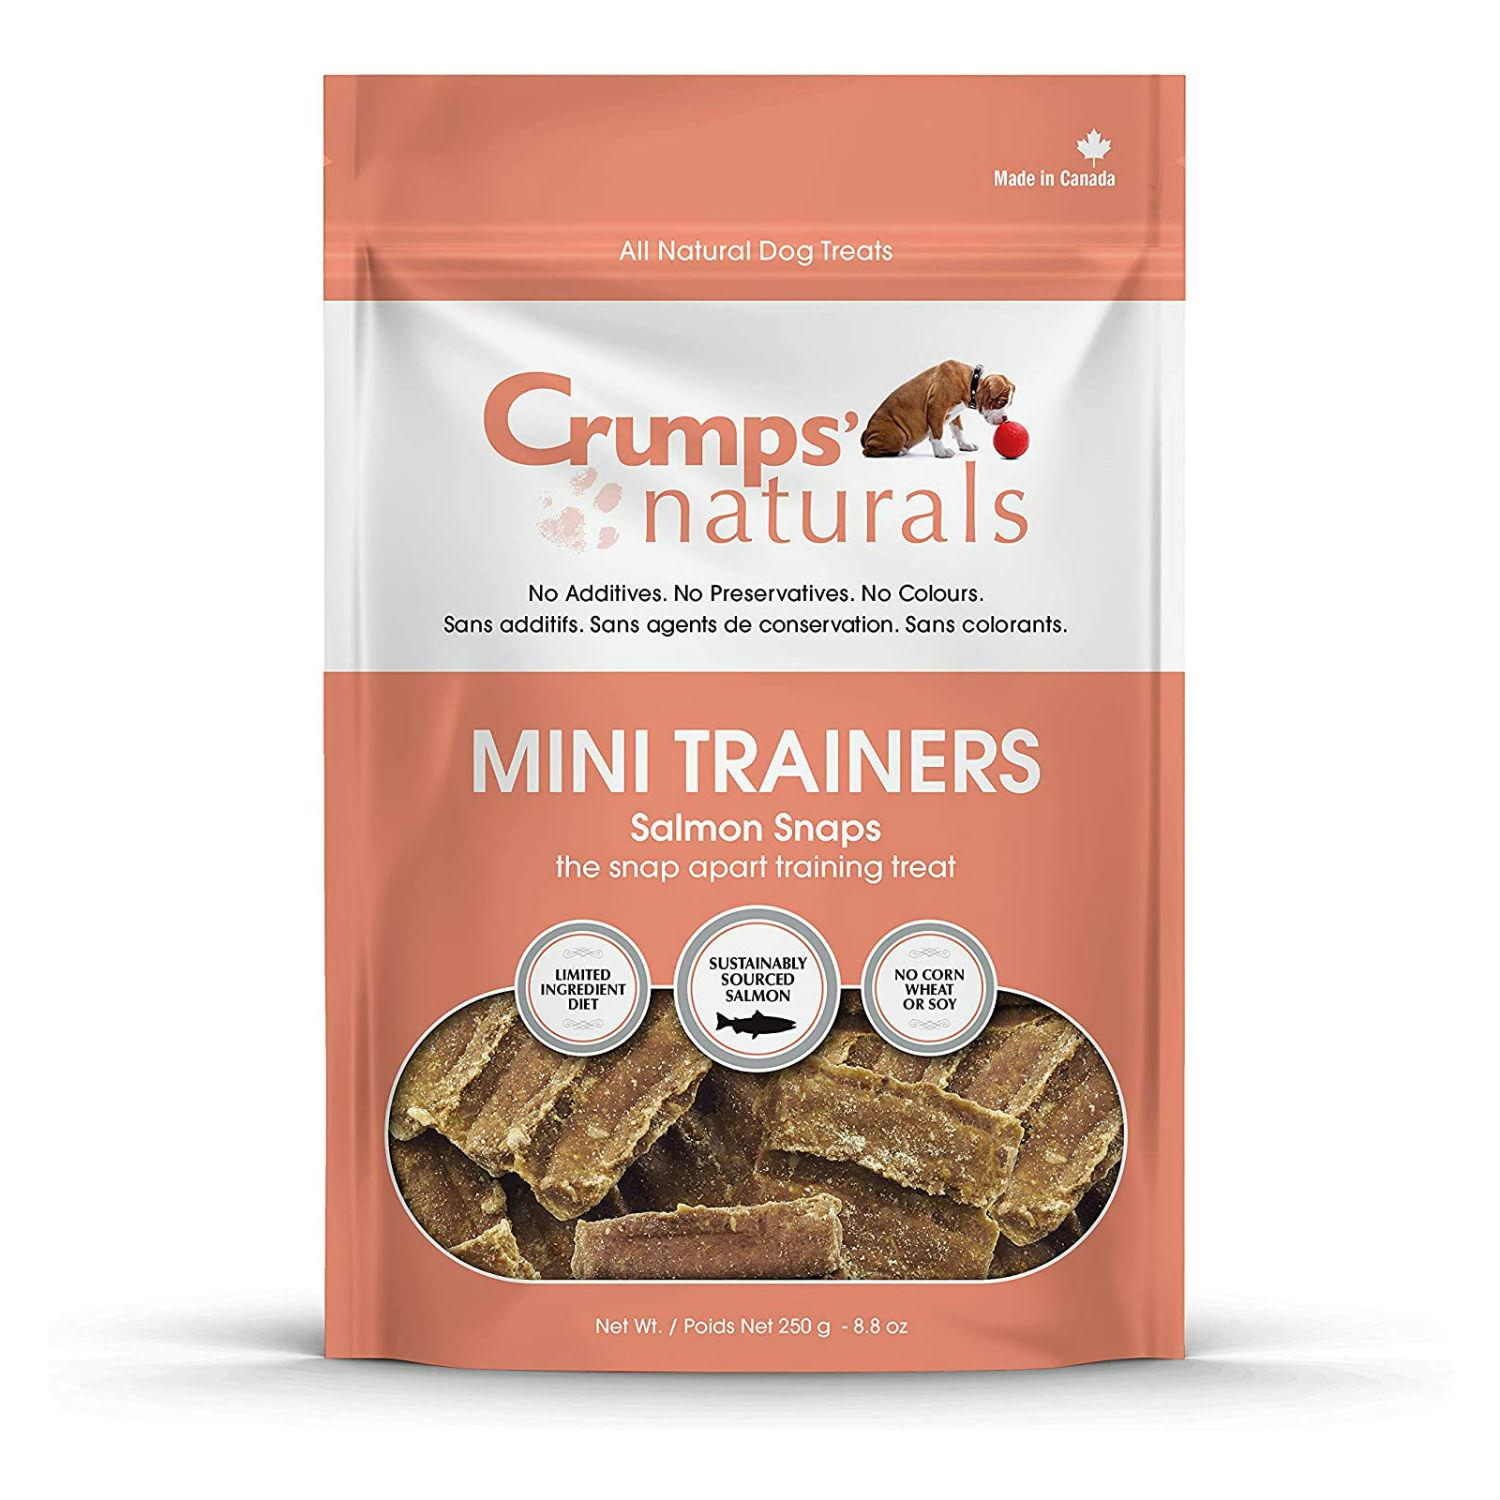 Crumps' Naturals Mini Trainers Dog Treats - Salmon Snaps